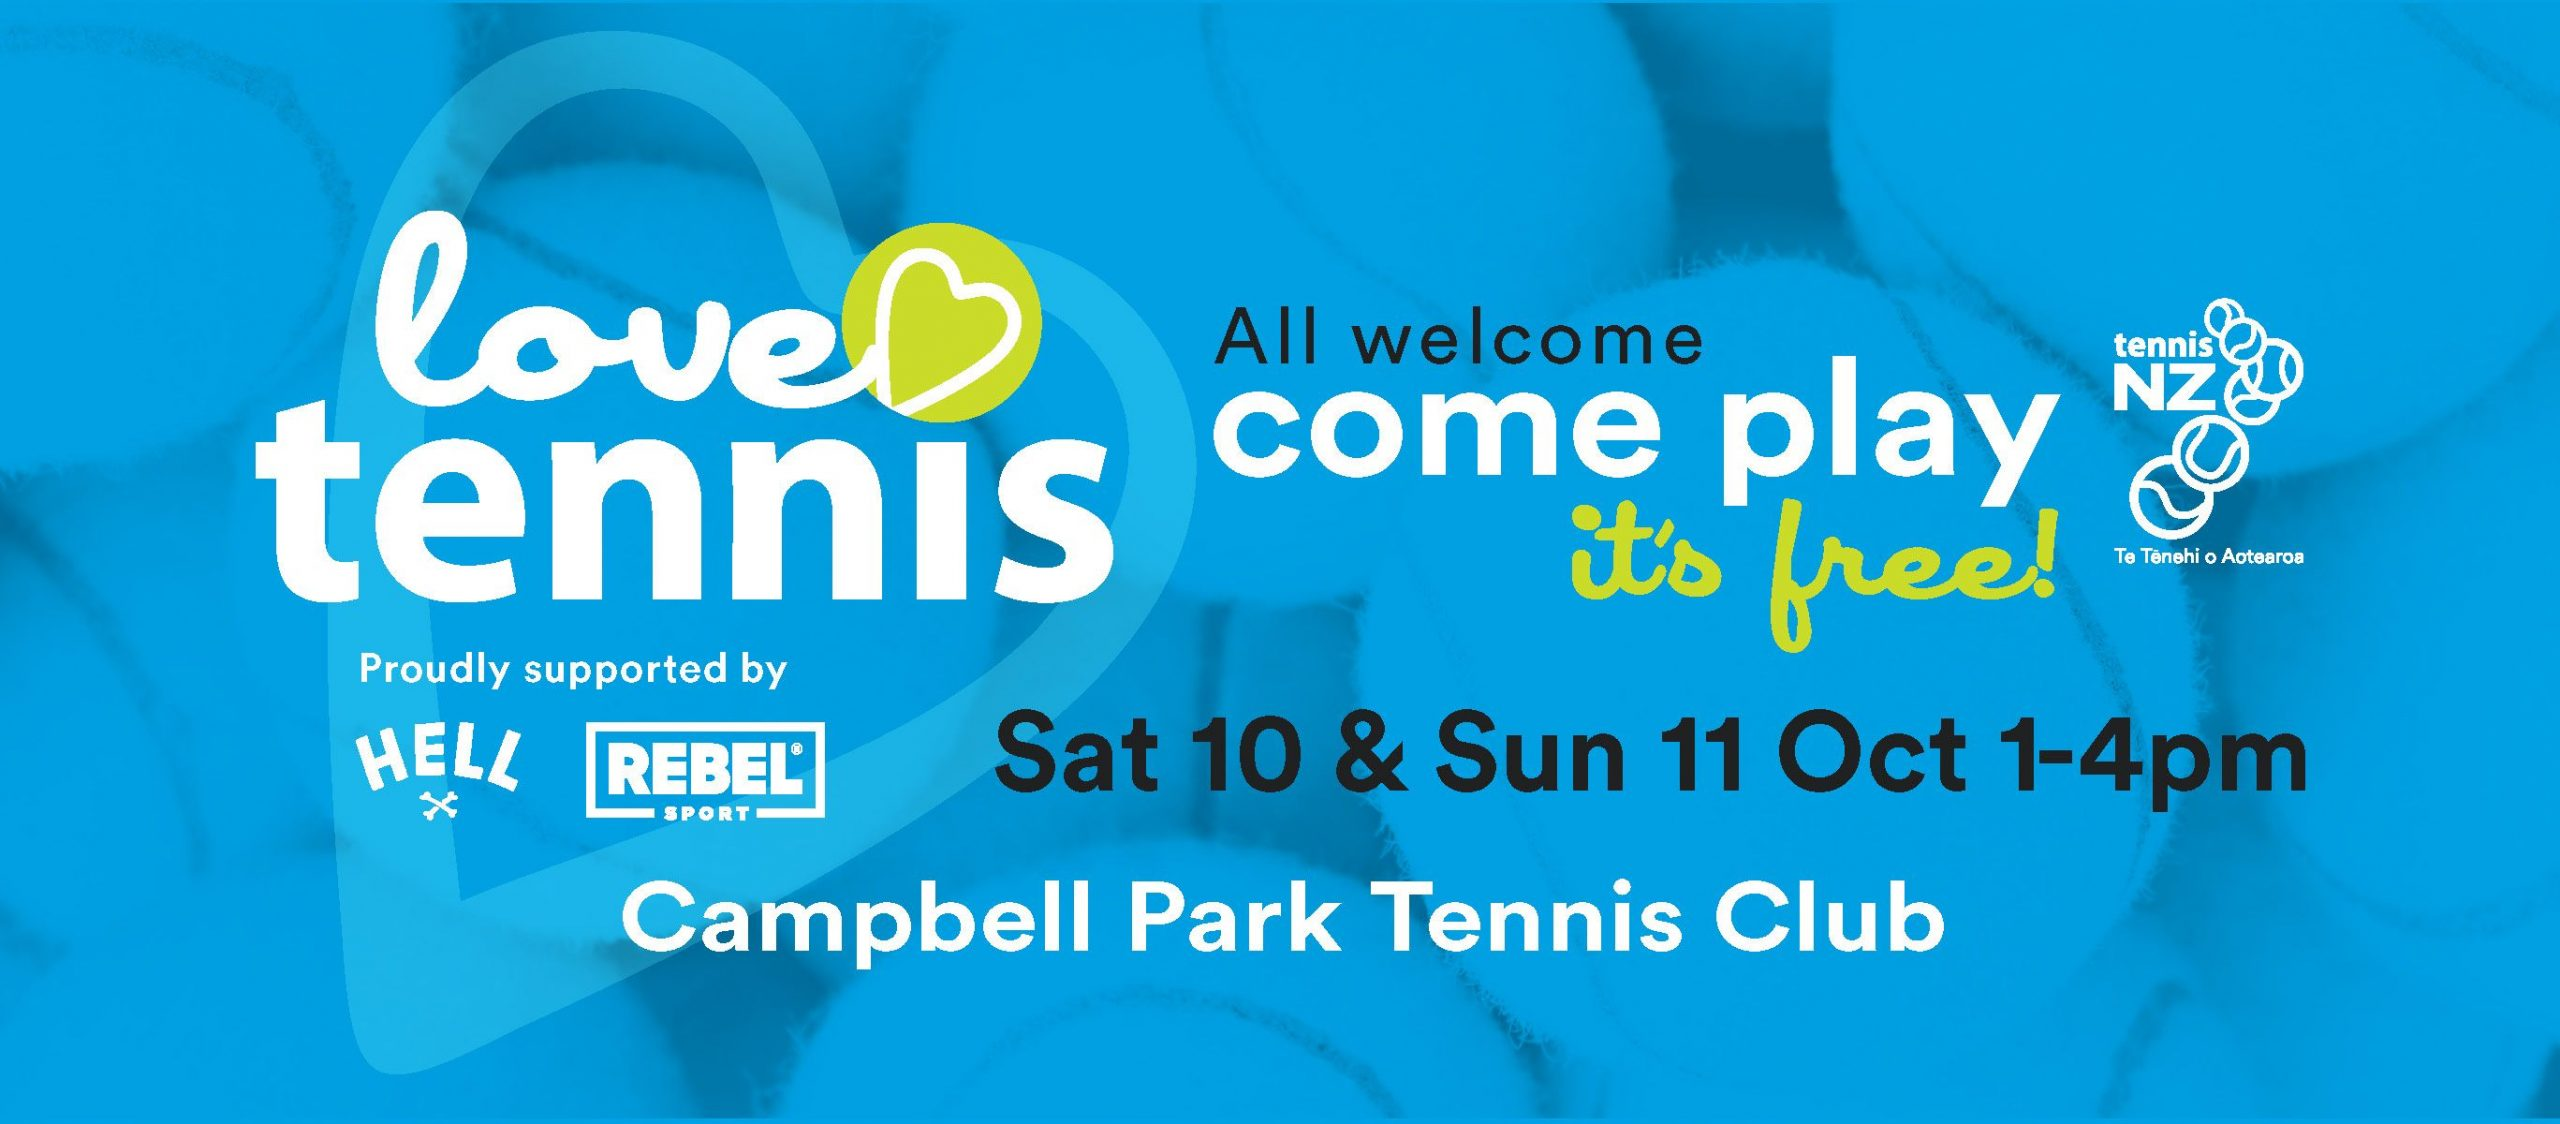 Love Tennis Day at Campbell Parl